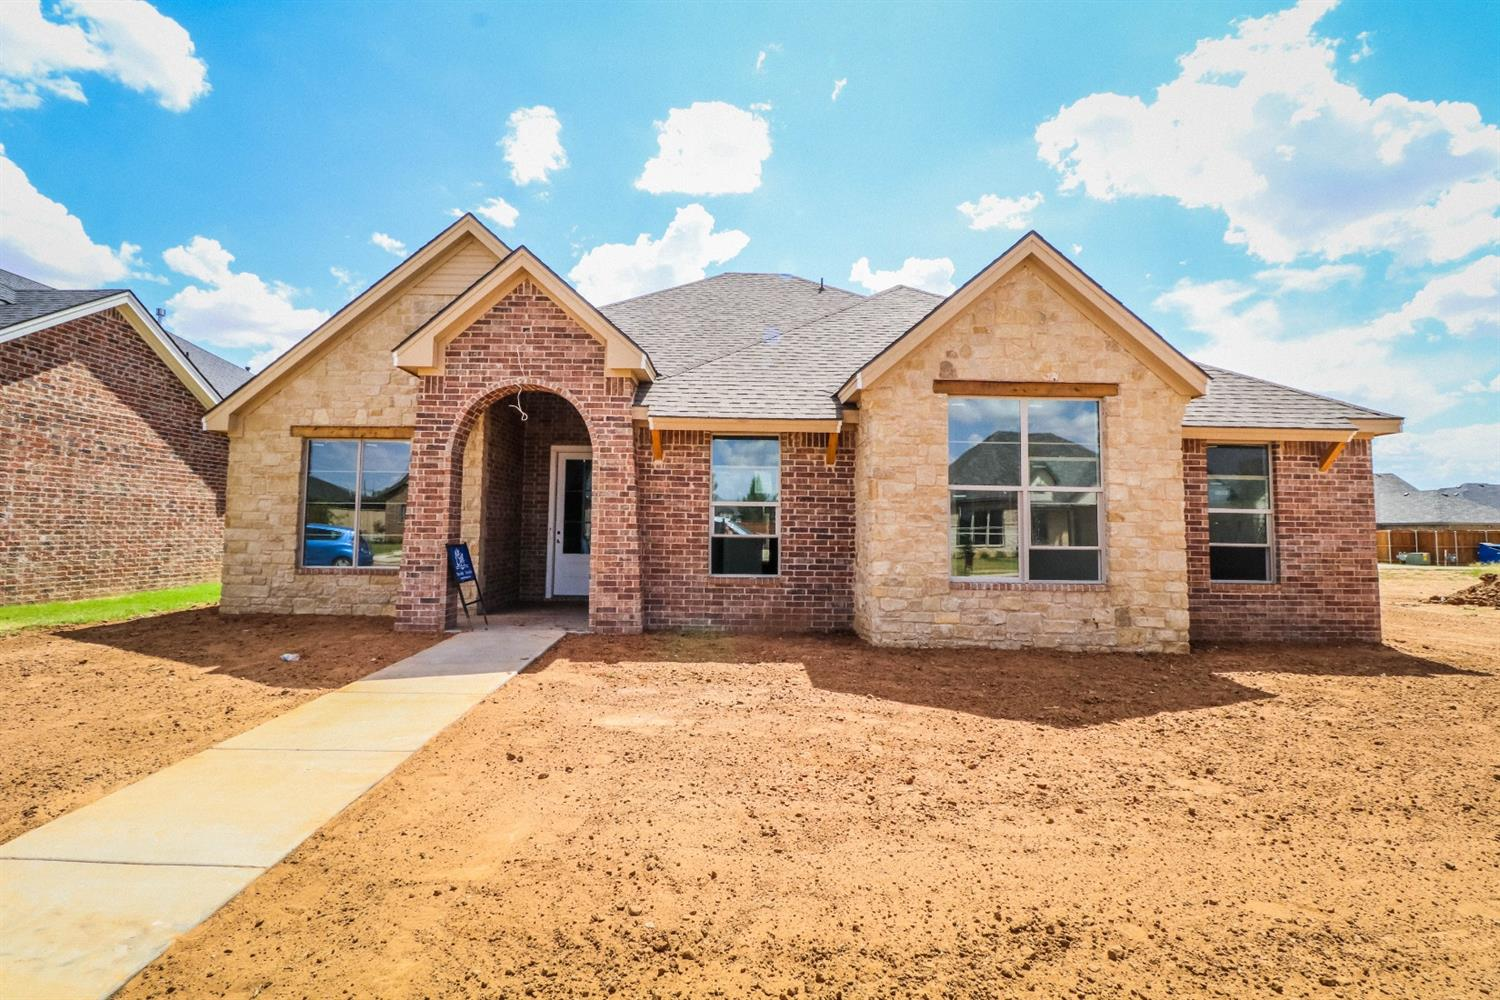 Amazing 4/2/2 Kim Craig New Construction Home in Preston Manor. Come See this Beautiful Open Concept Home with Rear entry garage on a Cul-de-sac. This Home features a Gas log fireplace, Large kitchen Island and gas stove, big patio and nice backyard for entertaining. Come see it today!